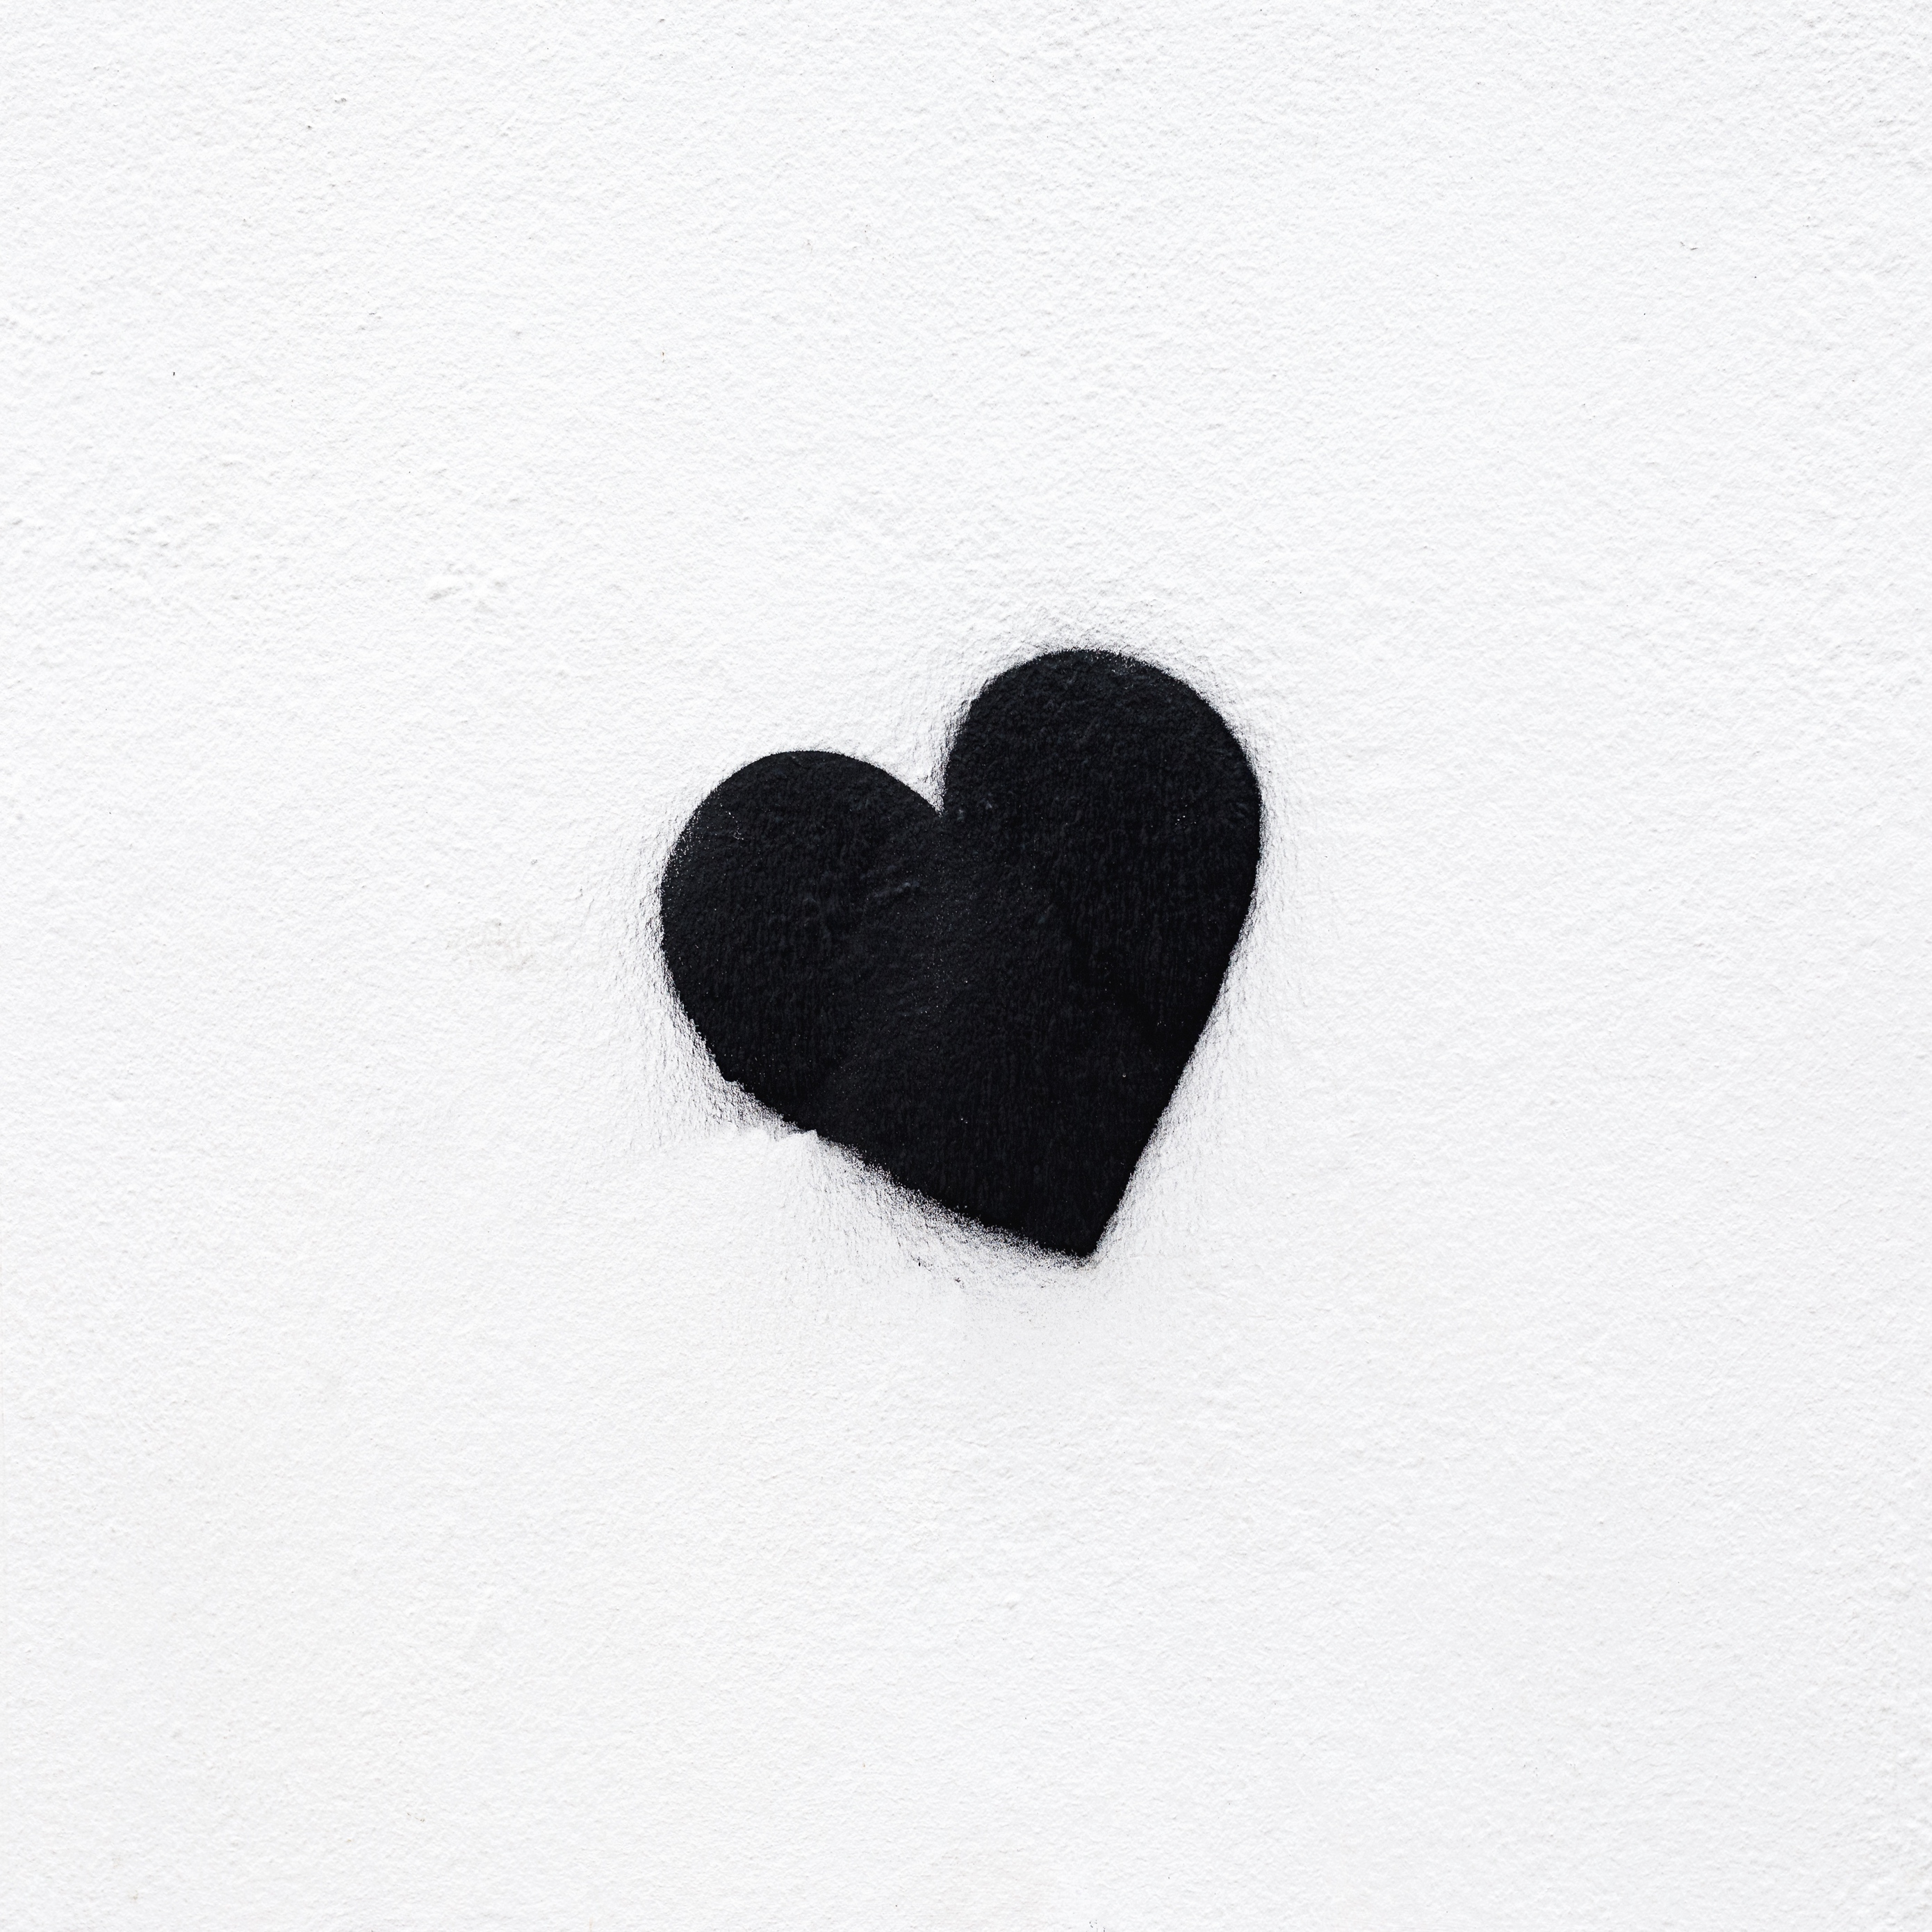 308 3088760 wallpaper heart bw love black white minimalism heart